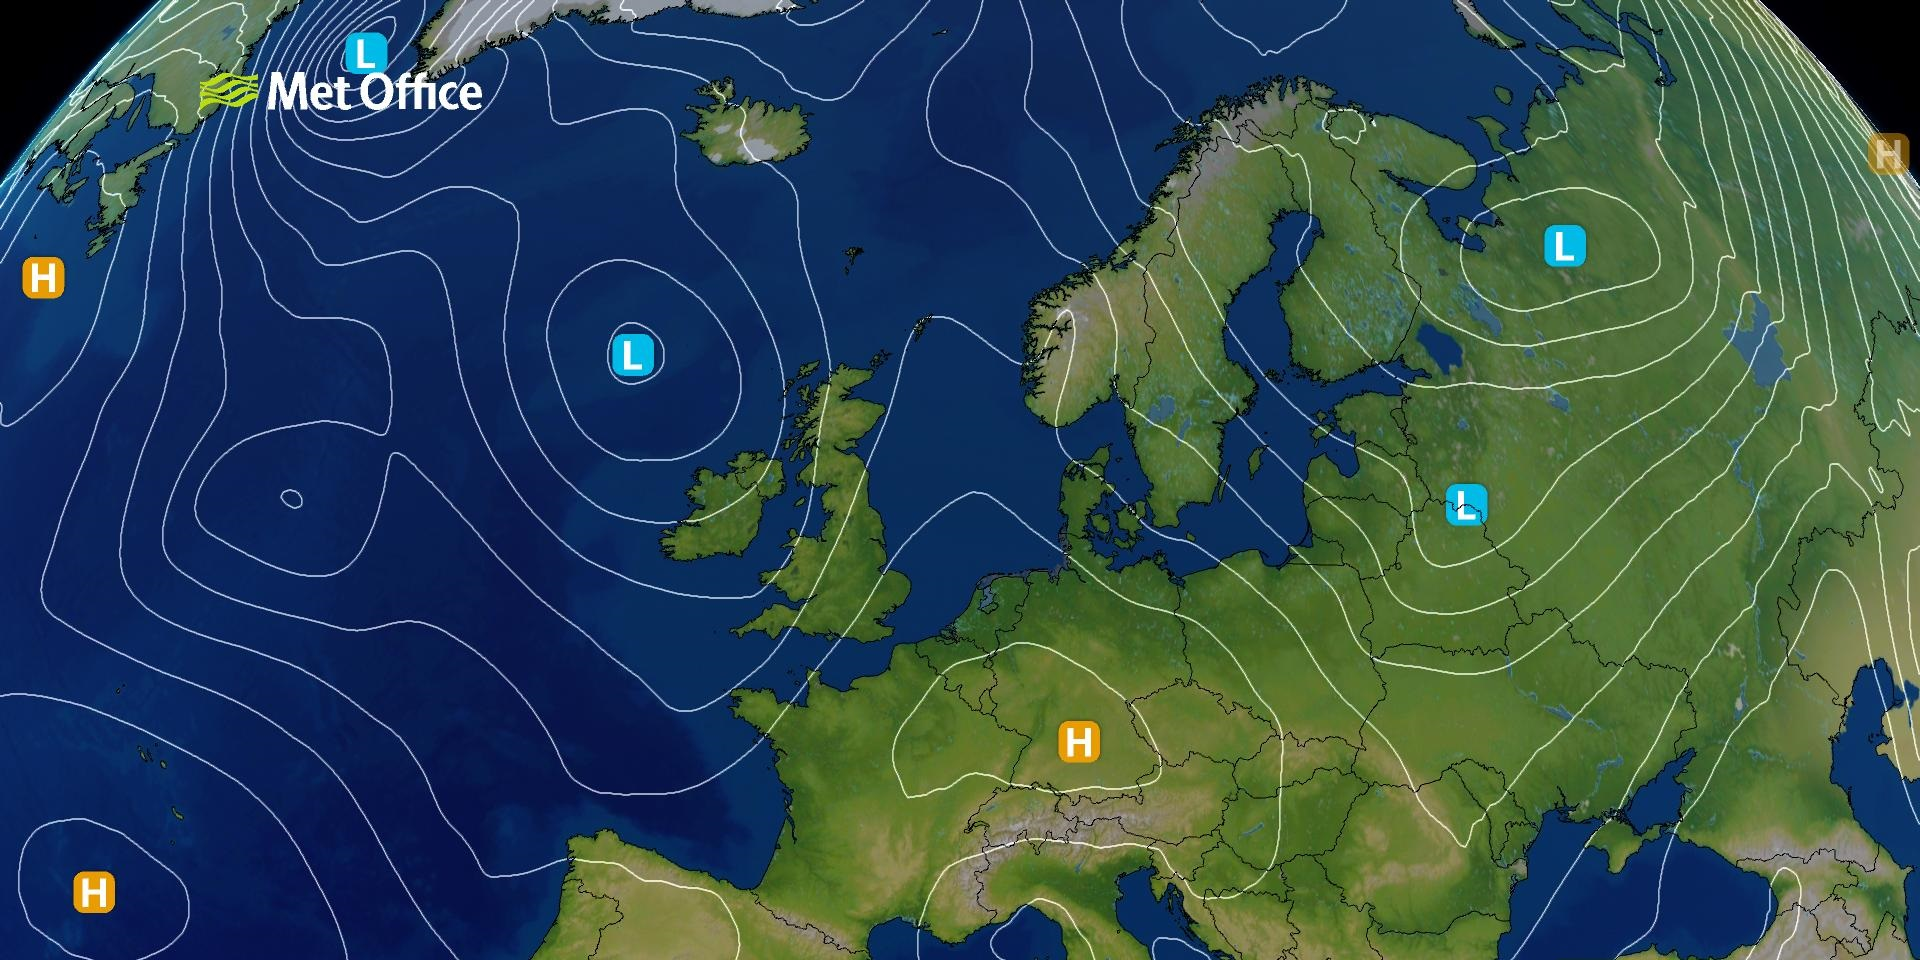 Surface Pressure Charts - Met Office on weather forecast europe map, european union countries map, live weather satellite india map, colorado rocky mountain topographic map, weather satellite california map, weather satellite south america, weather africa satellite map, weather satellite caribbean, weather satellite middle east,